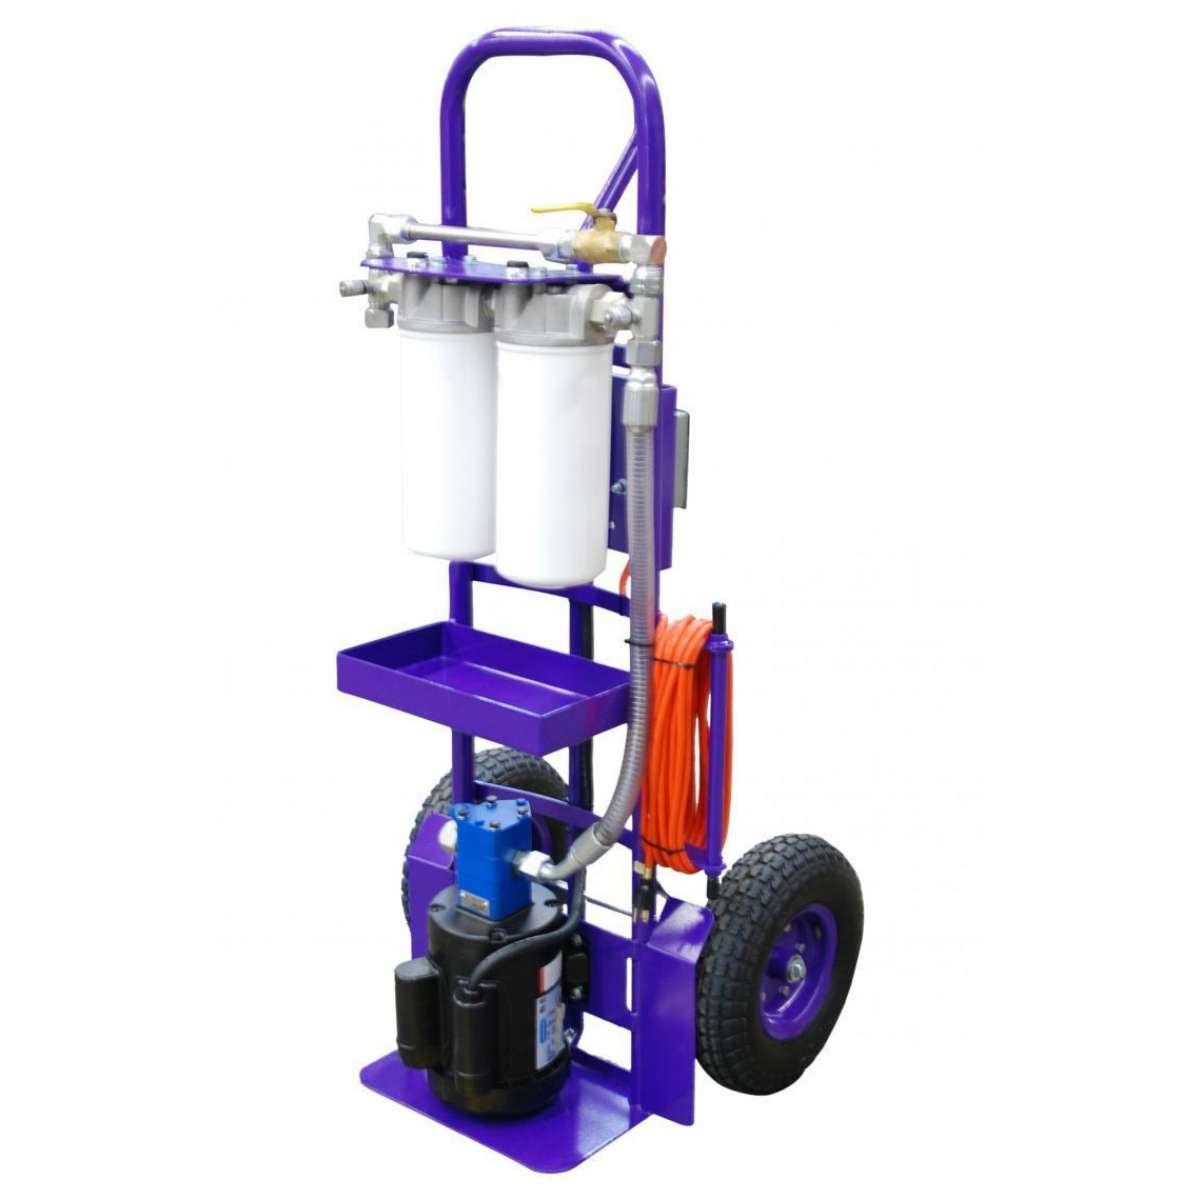 Best M Series FilterCart for Gear Oil 1HP 2GPM